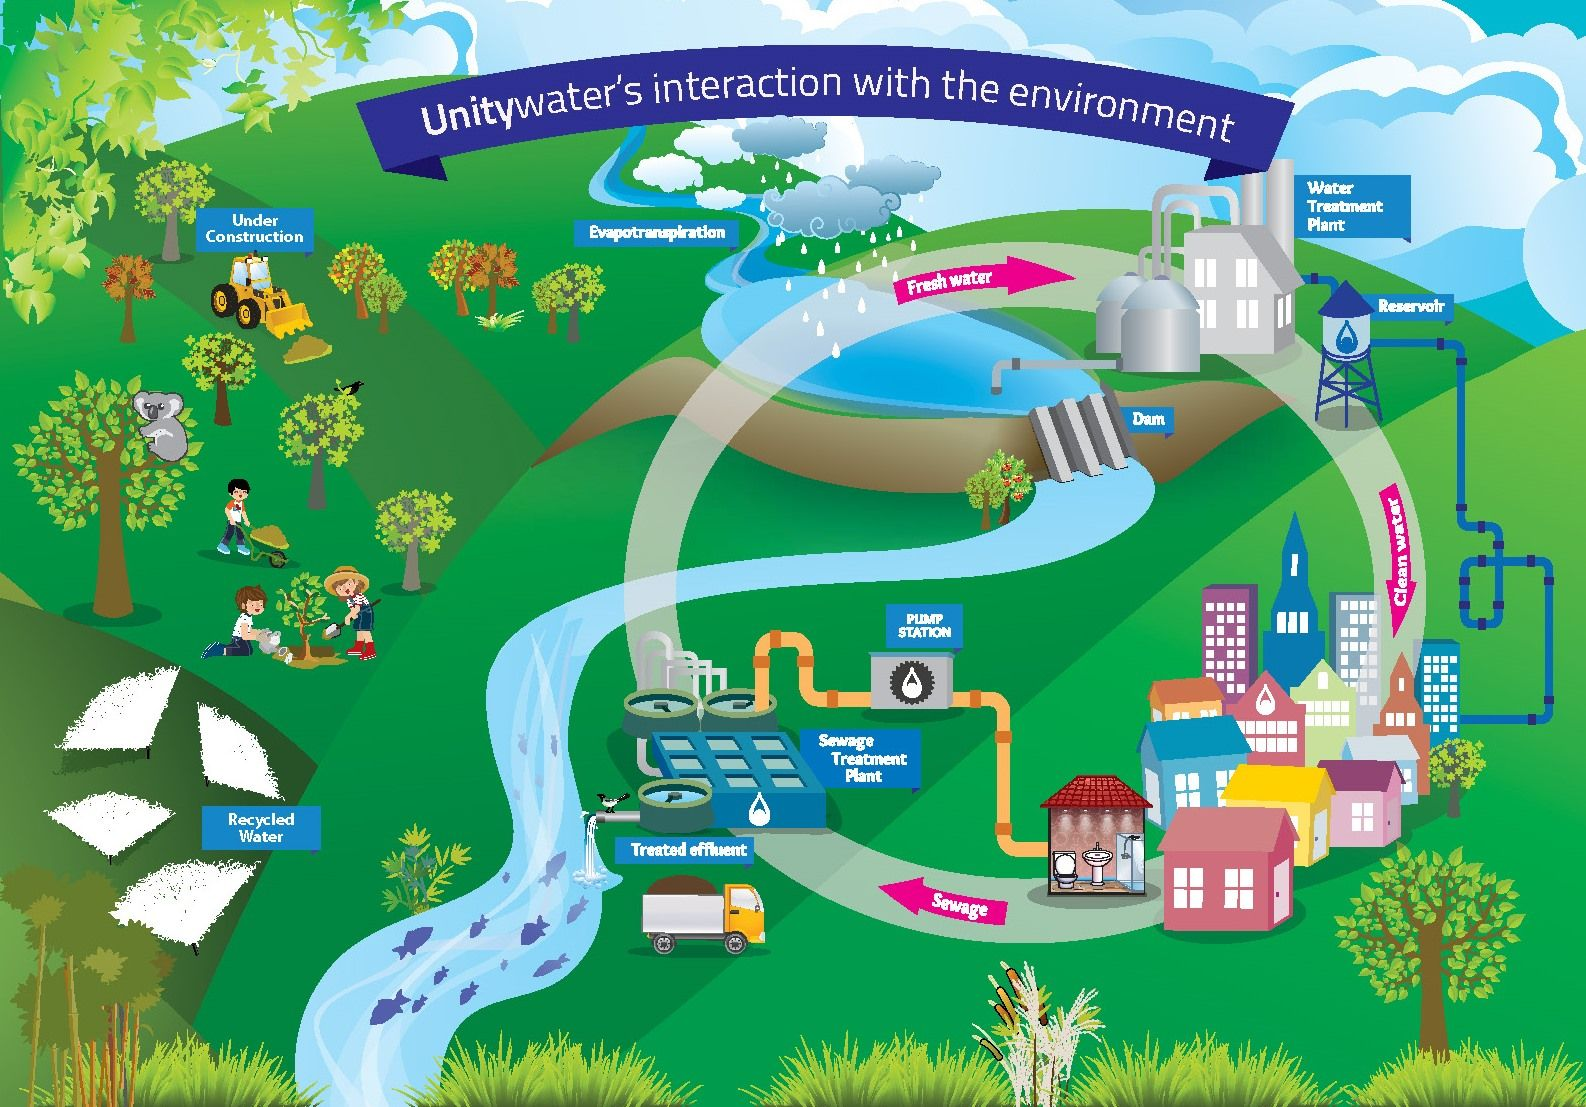 Urban water cycle (With images) Water cycle, Water